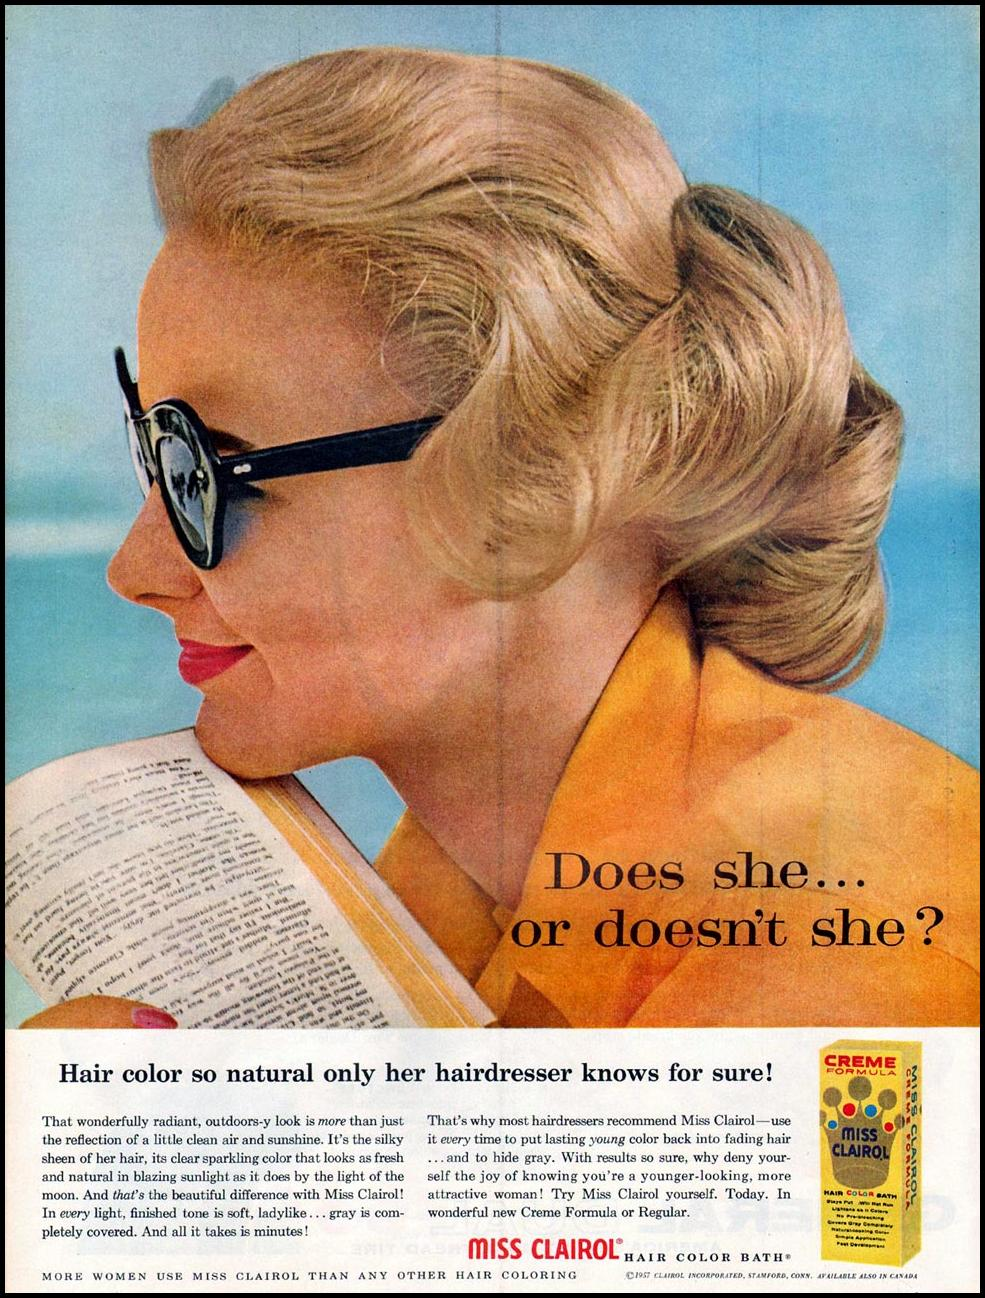 MISS CLAIROL HAIR COLOR BATH LIFE 07/01/1957 p. 80